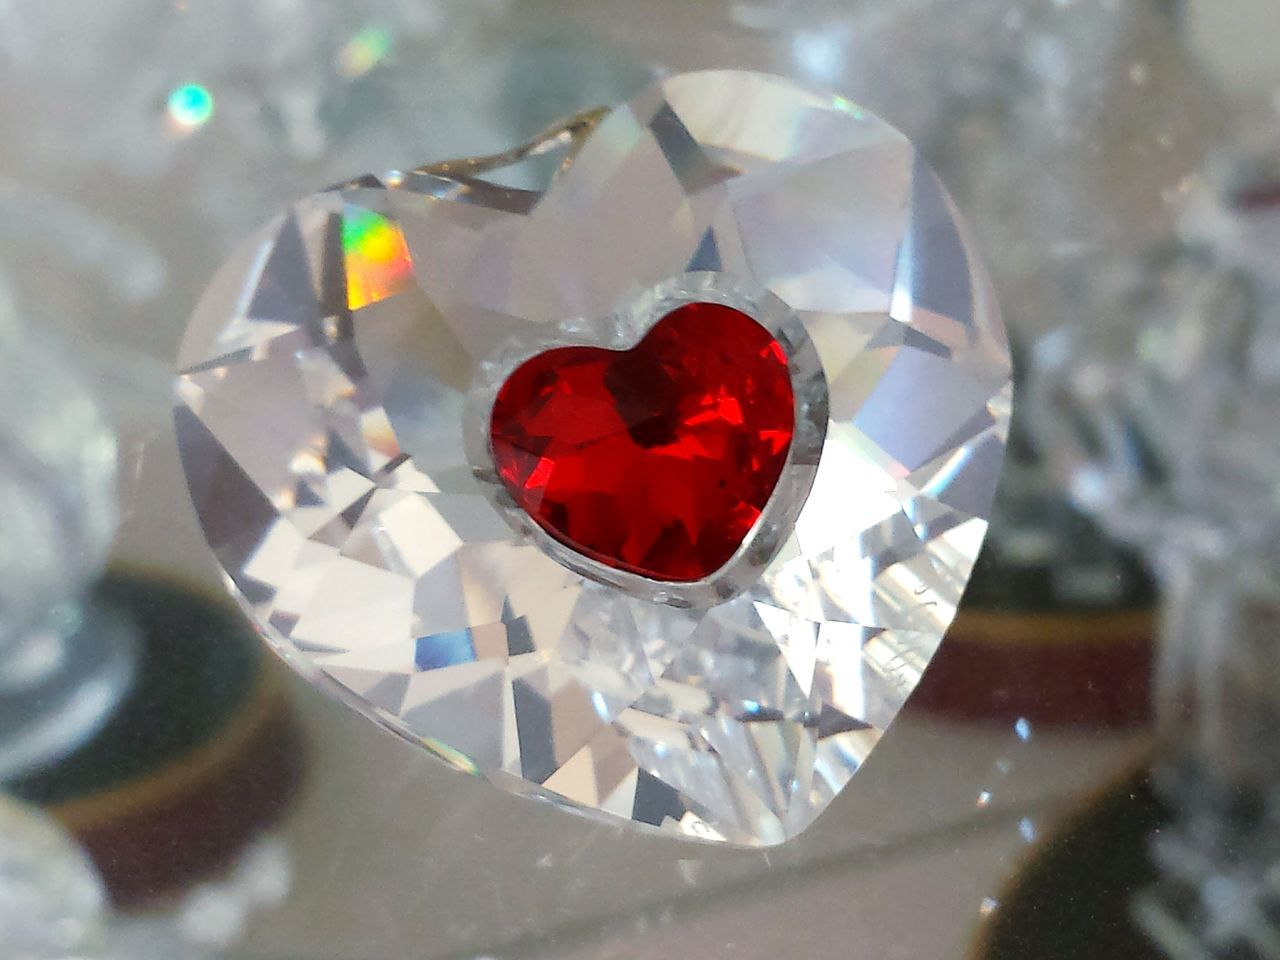 """Heart Shape Red Love Close-up Fragility No People Indoors  Freshness Day Ladyphotographerofthemonth Indoors  Red Crystal """" Schwebend es"""" Herz Schillernd Crystalline Crystals Crystal Heart Crystal Clear EyeEm Diversity Art Is Everywhere"""